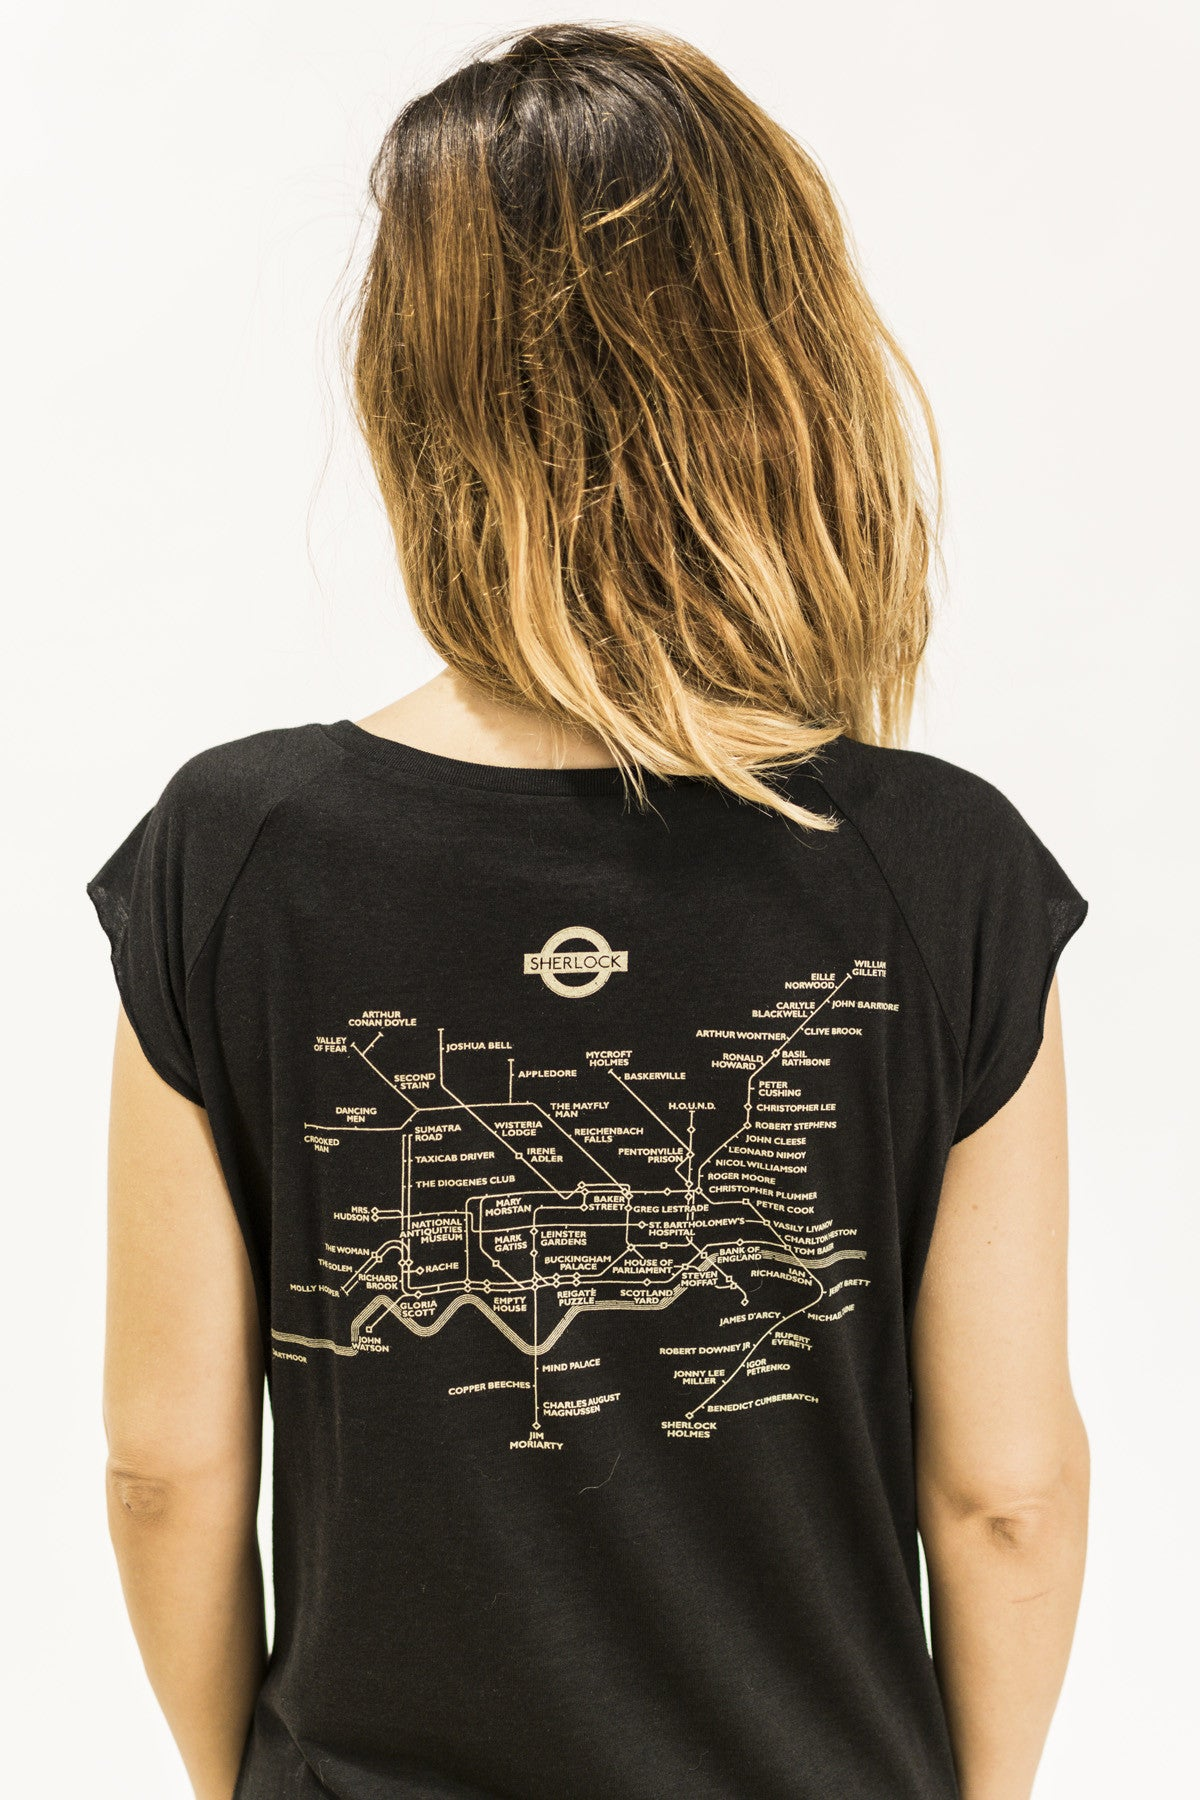 sherlock london tube tshirt by suxinsu